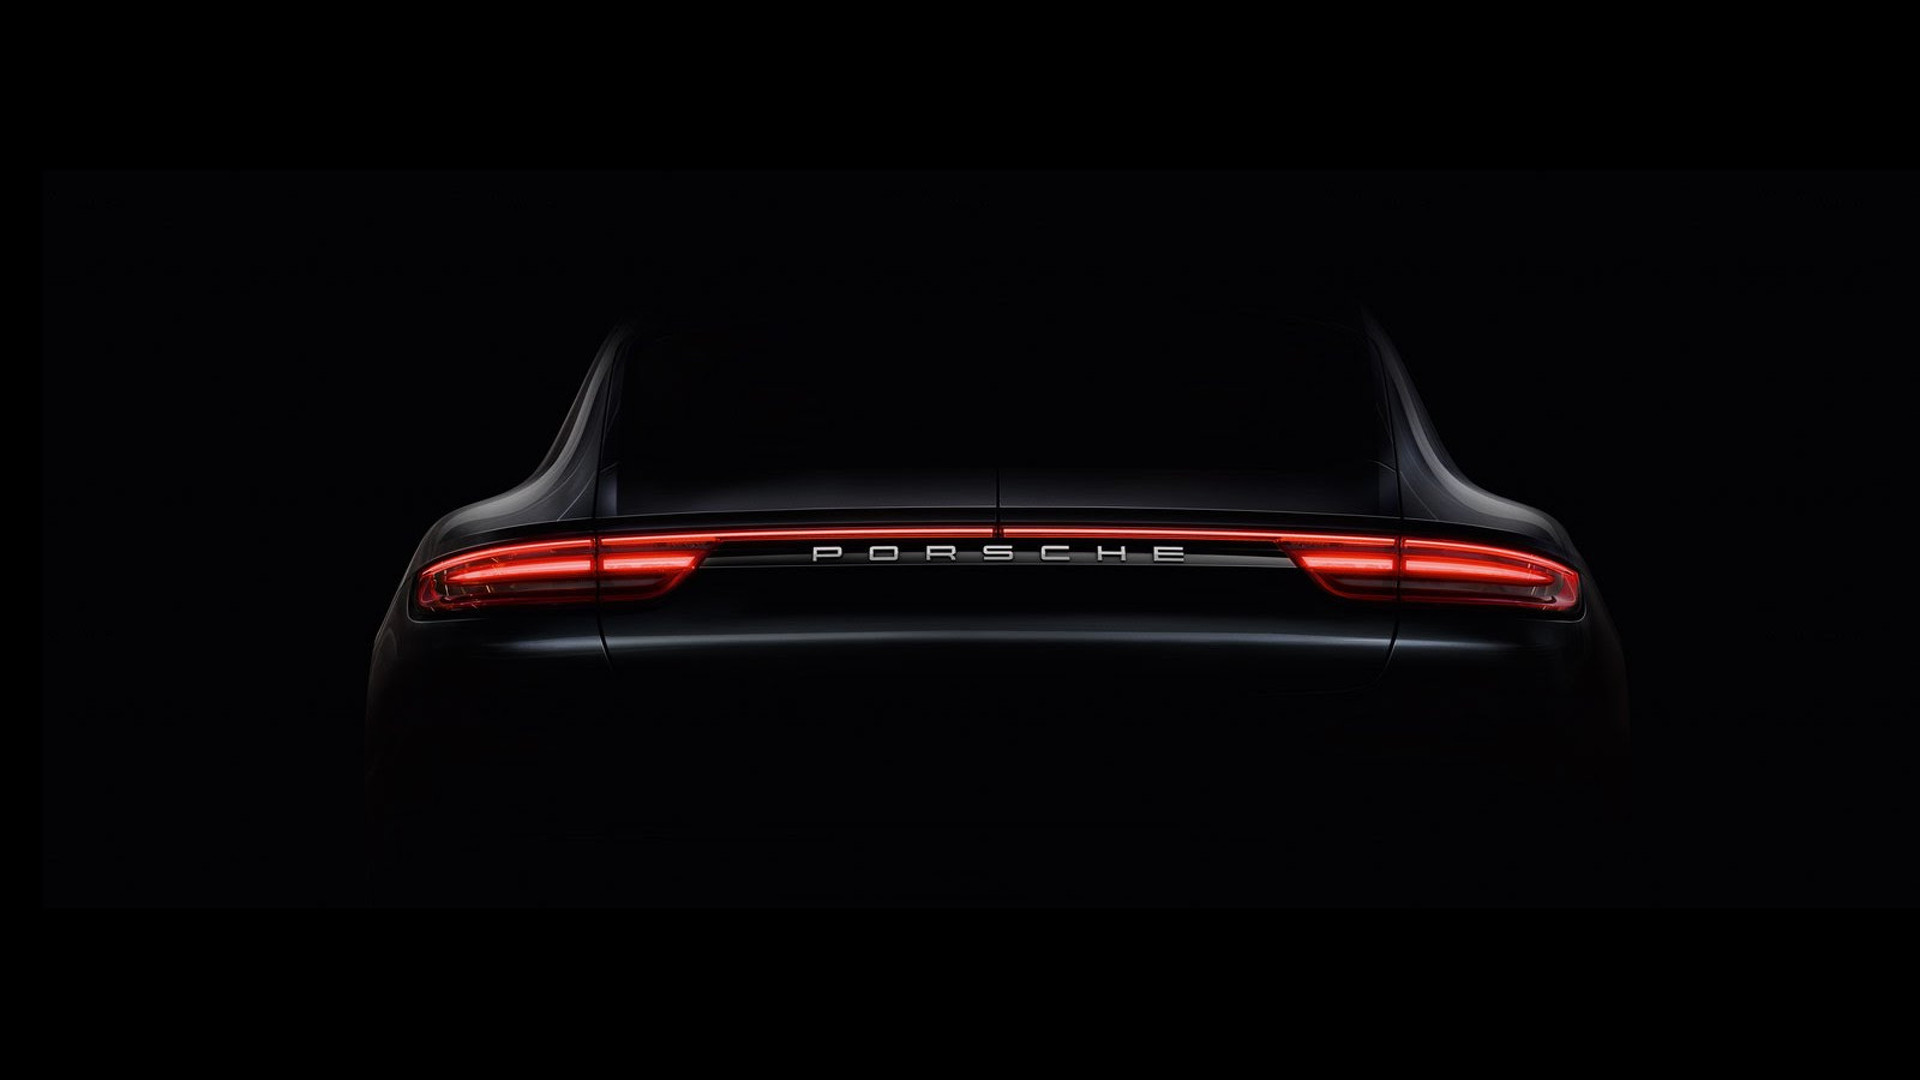 2017 Porsche Panamera Teaser Video Released